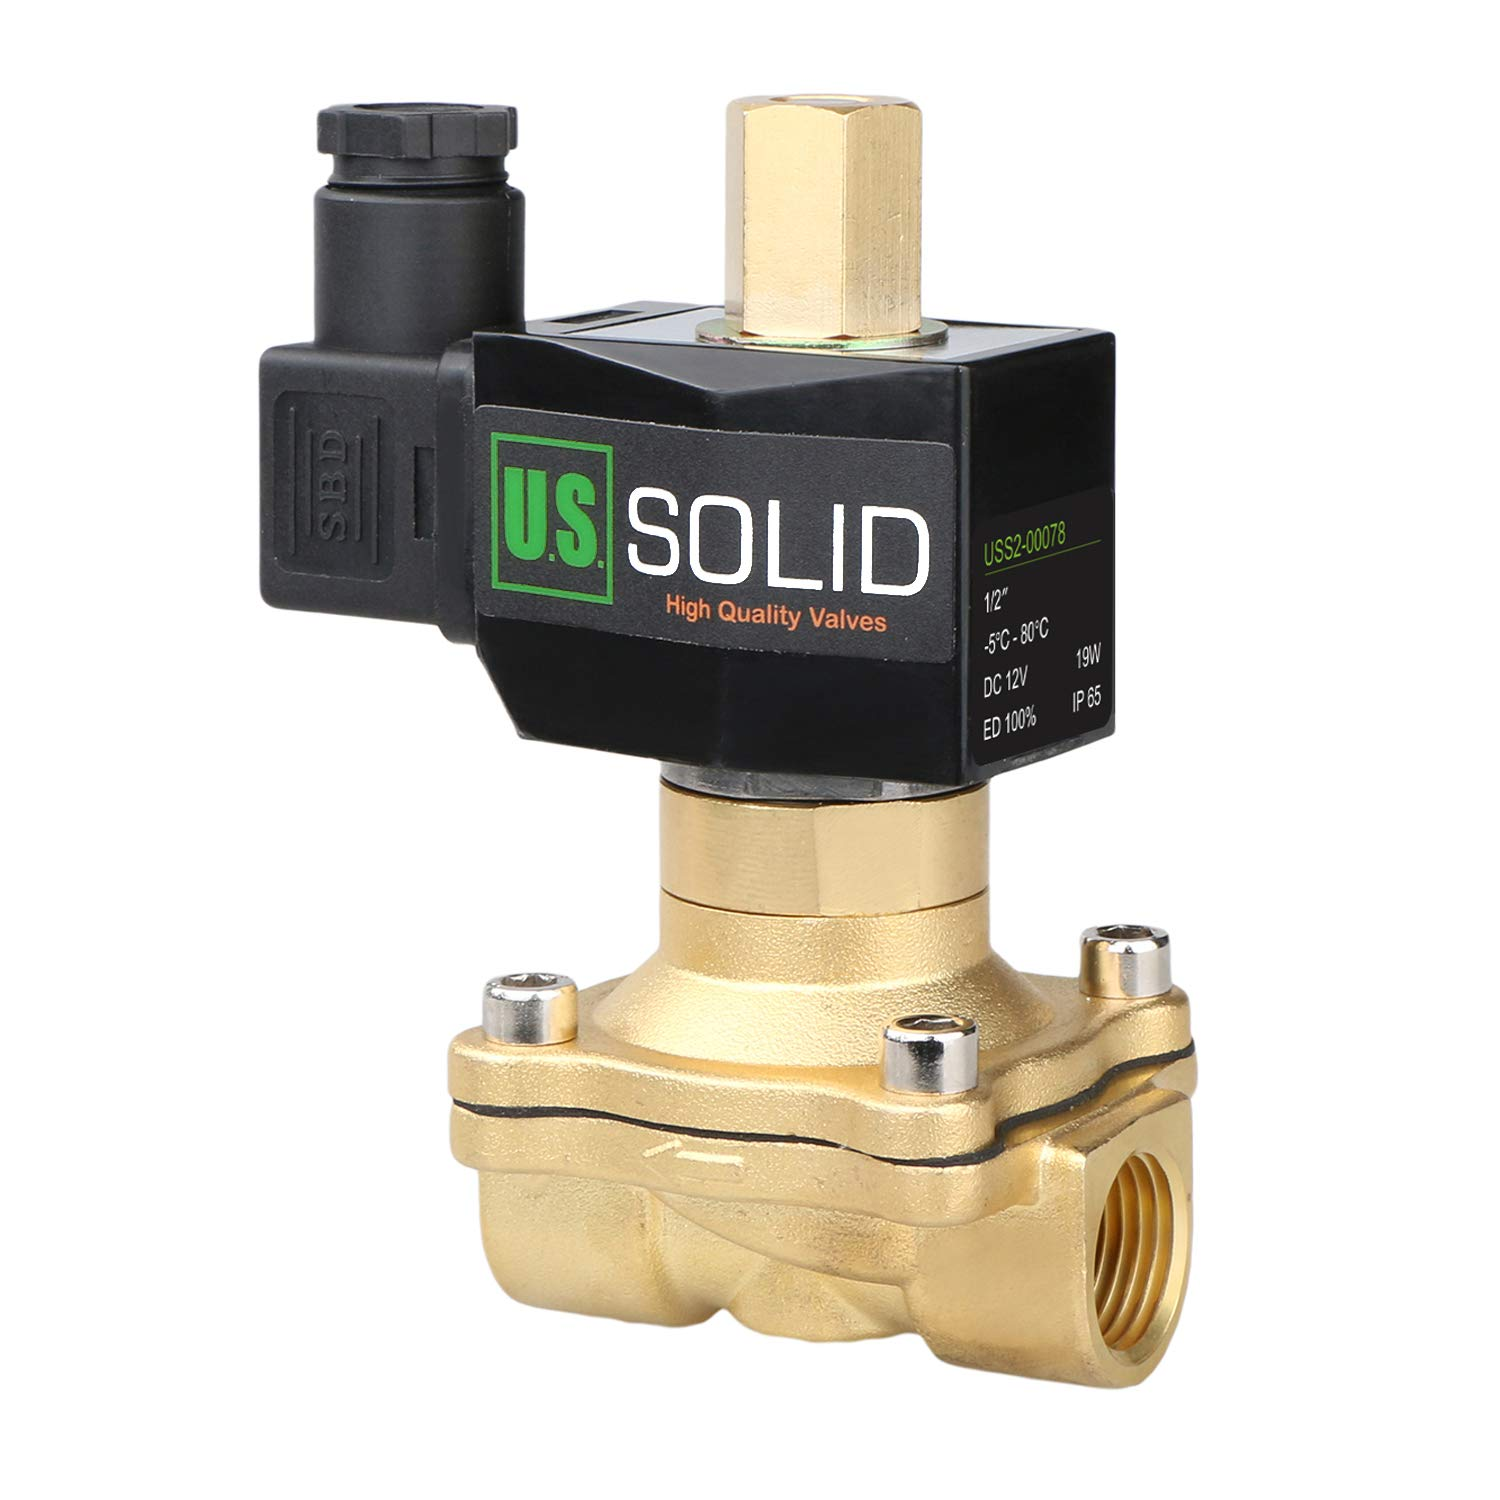 1/2'' Brass 12V DC Electric Solenoid Valve Normally Open Air Water NBR by U.S. Solid